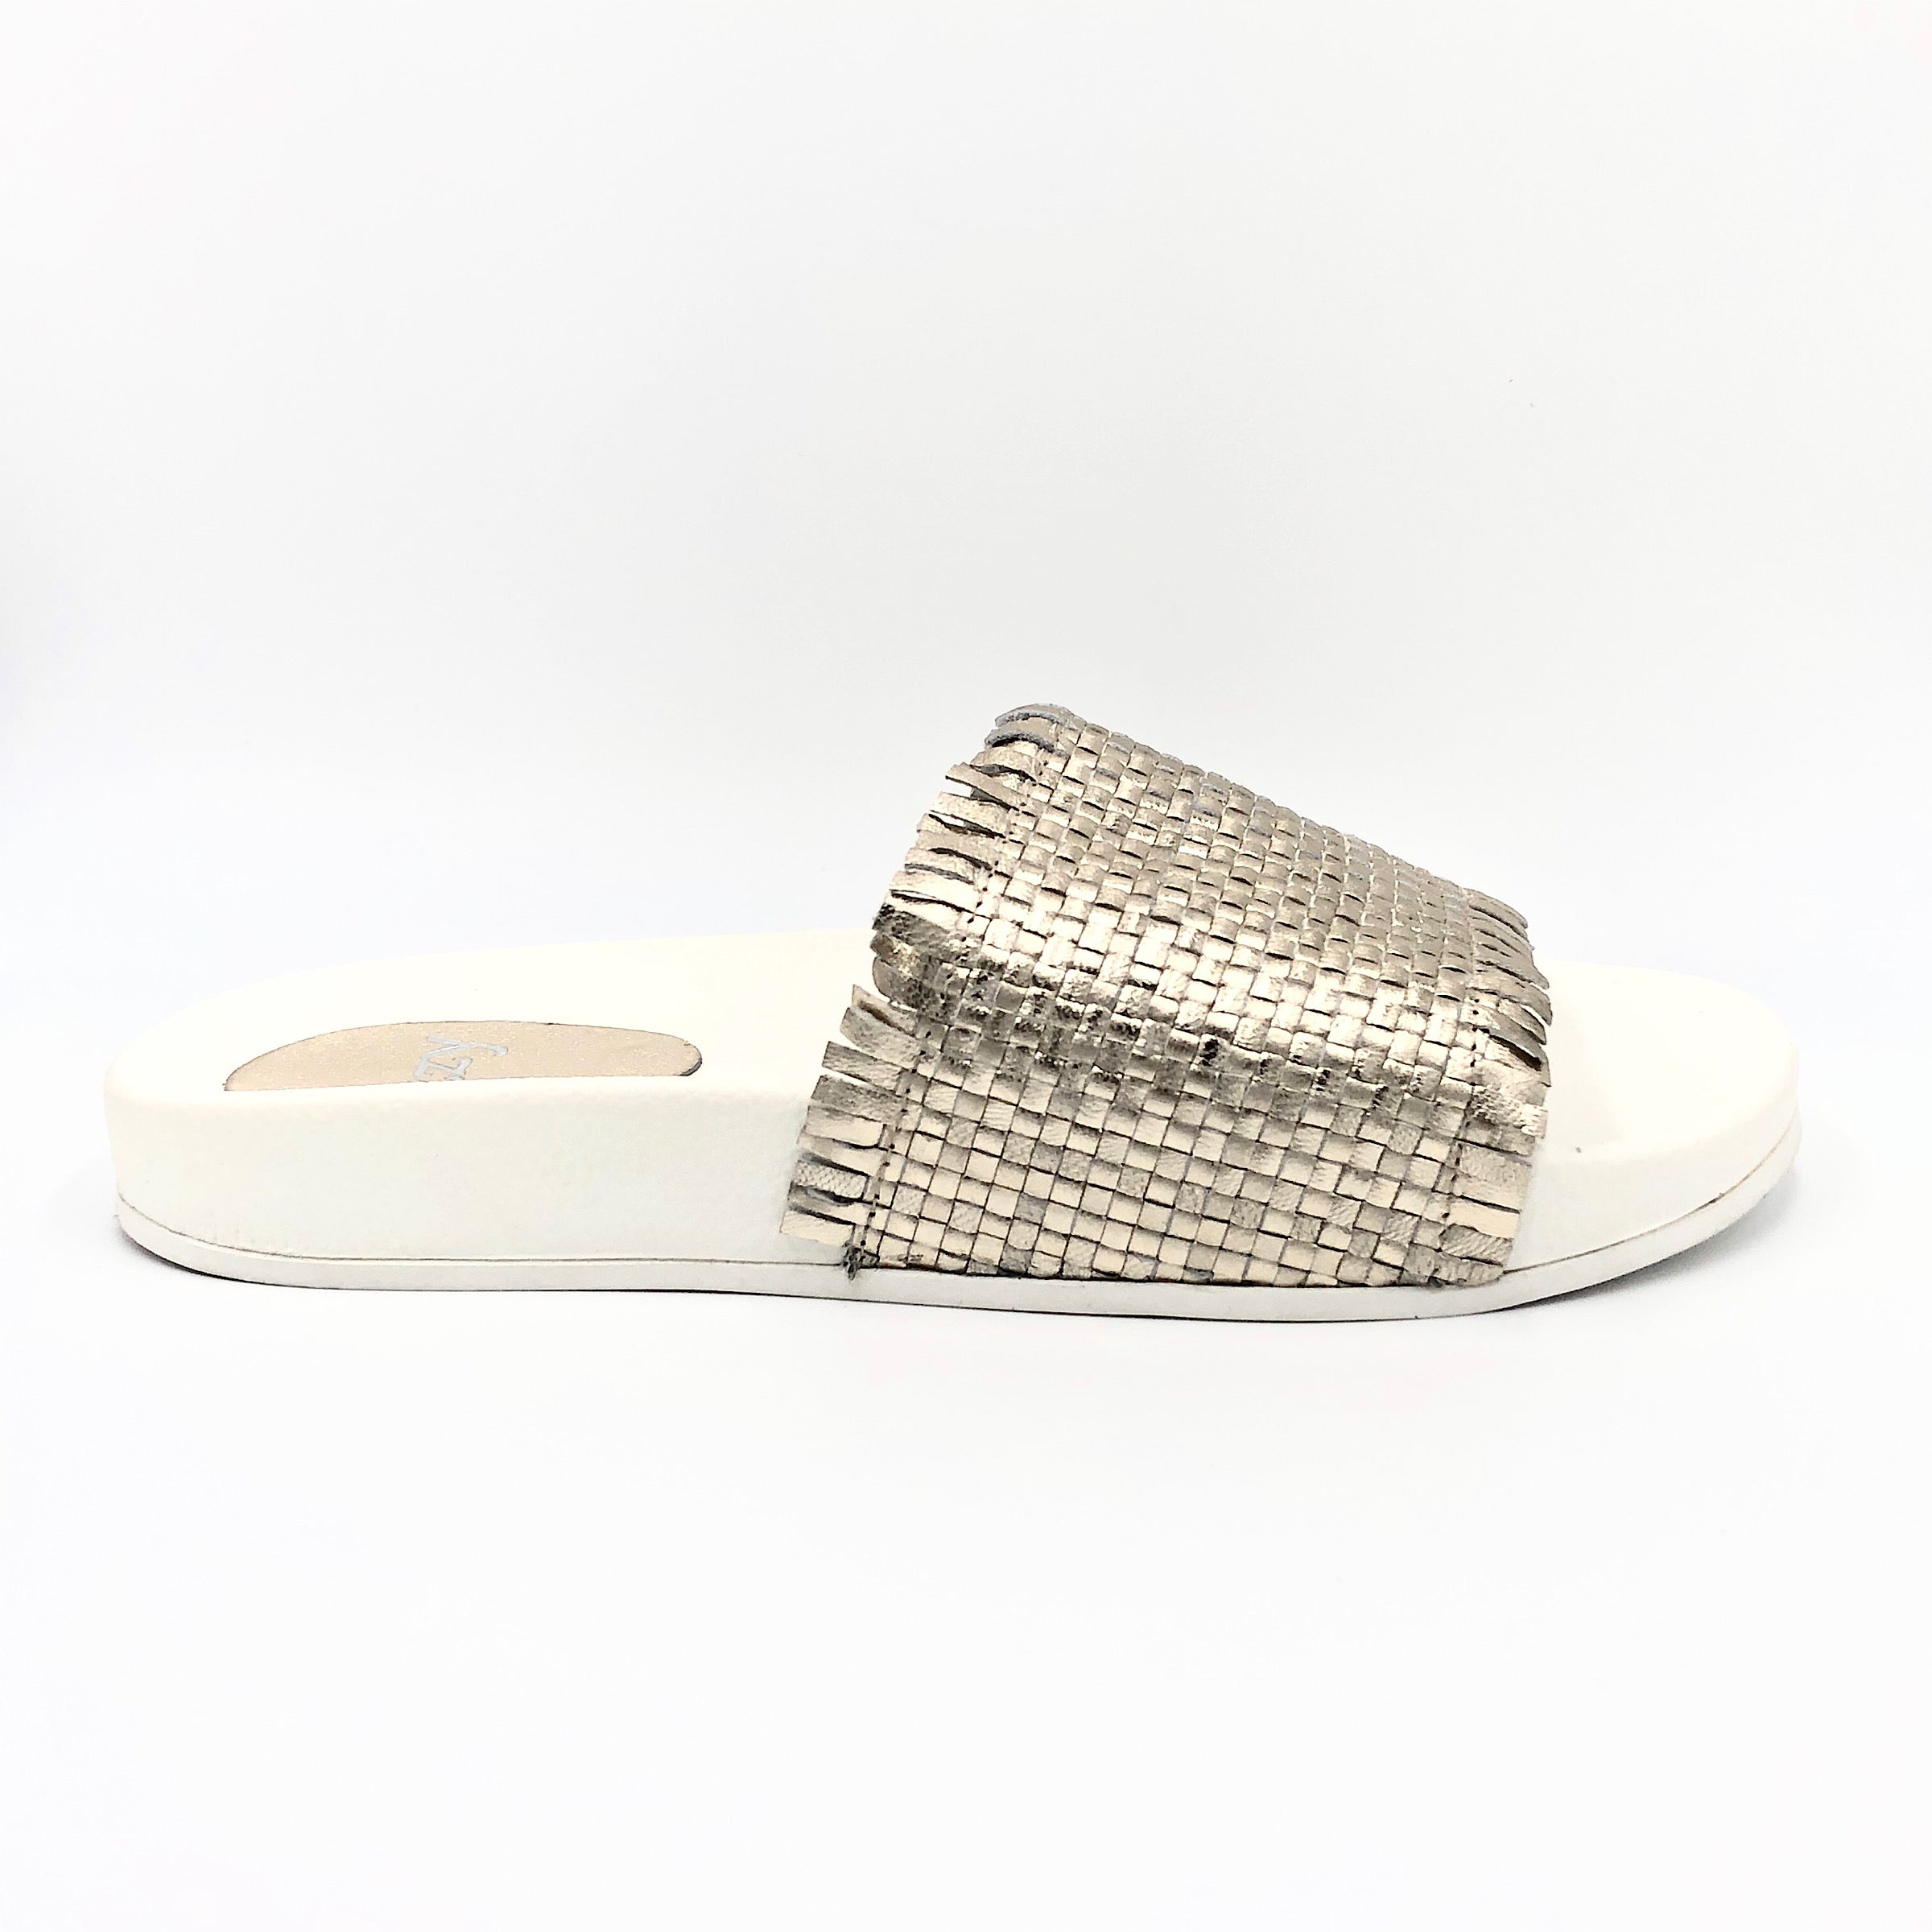 The Woven Frayed Edge Slide in Platino